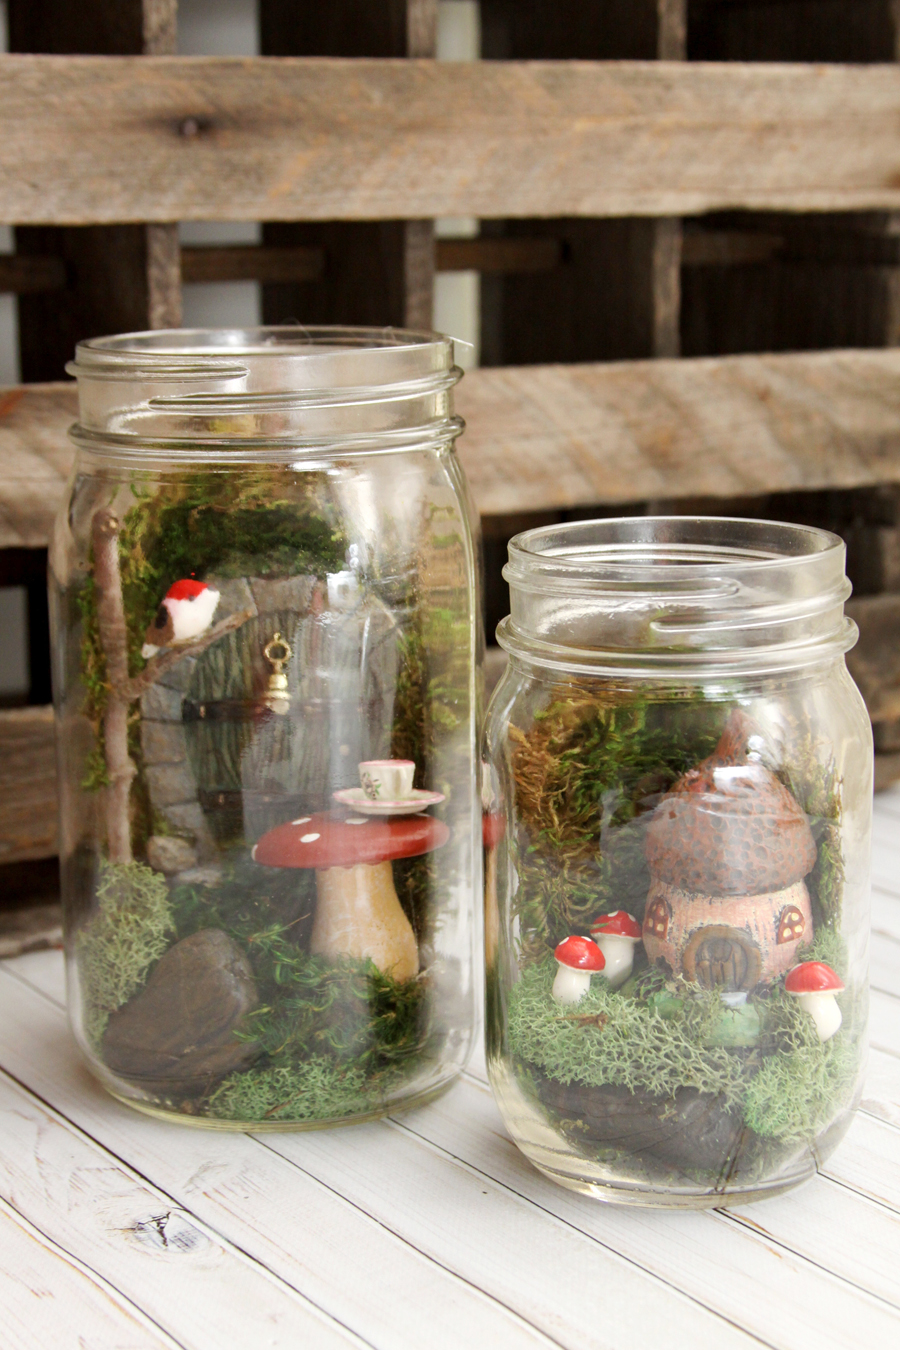 These Simple and Sweet Mason Jar Fairy